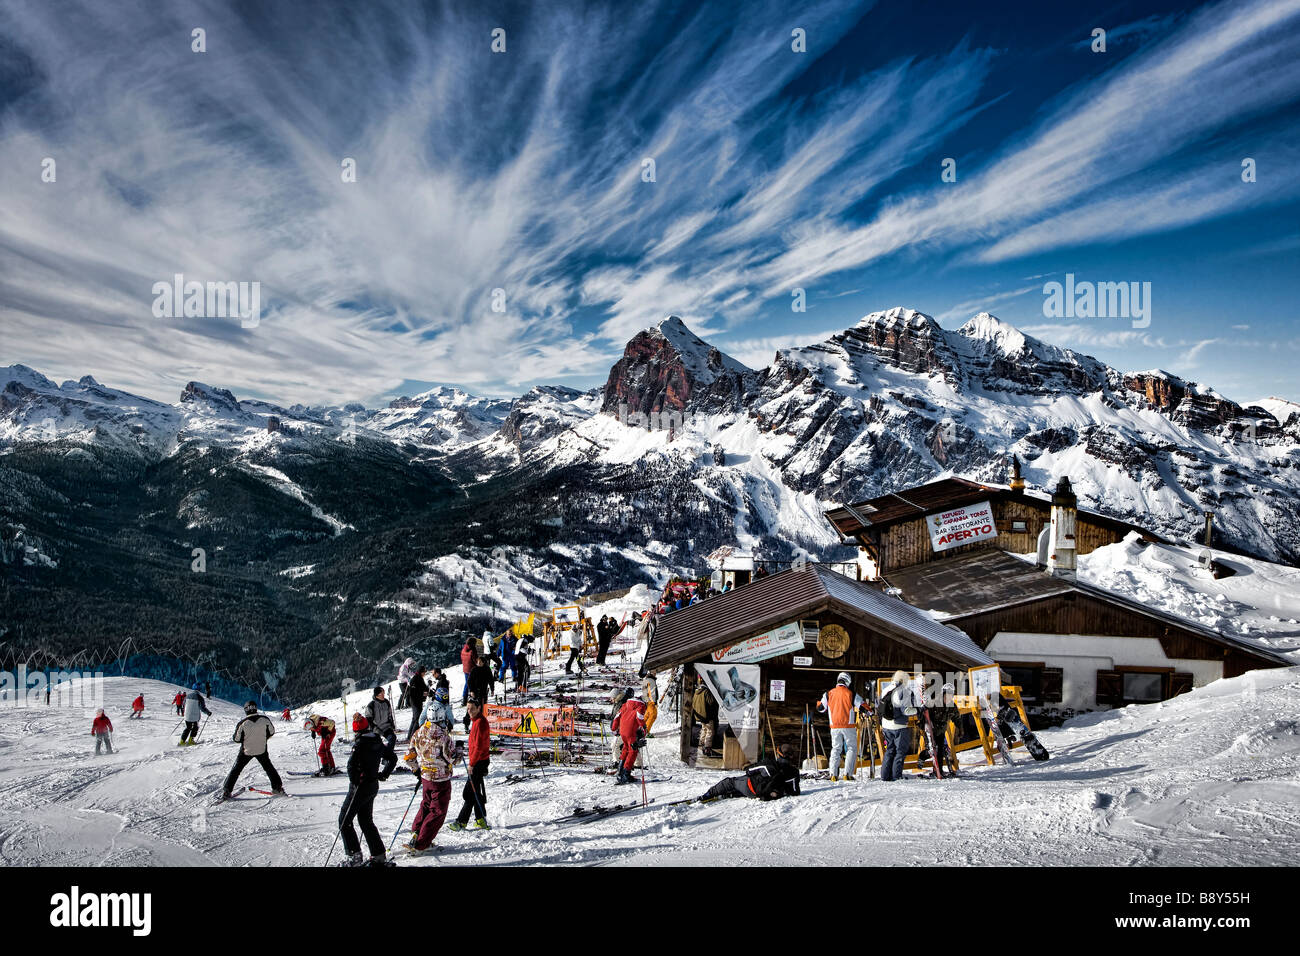 skiing down the Dolomites at Cortina D'Ampezzo Italian Alps Alpi Veneto Italy Dolomiti - Stock Image